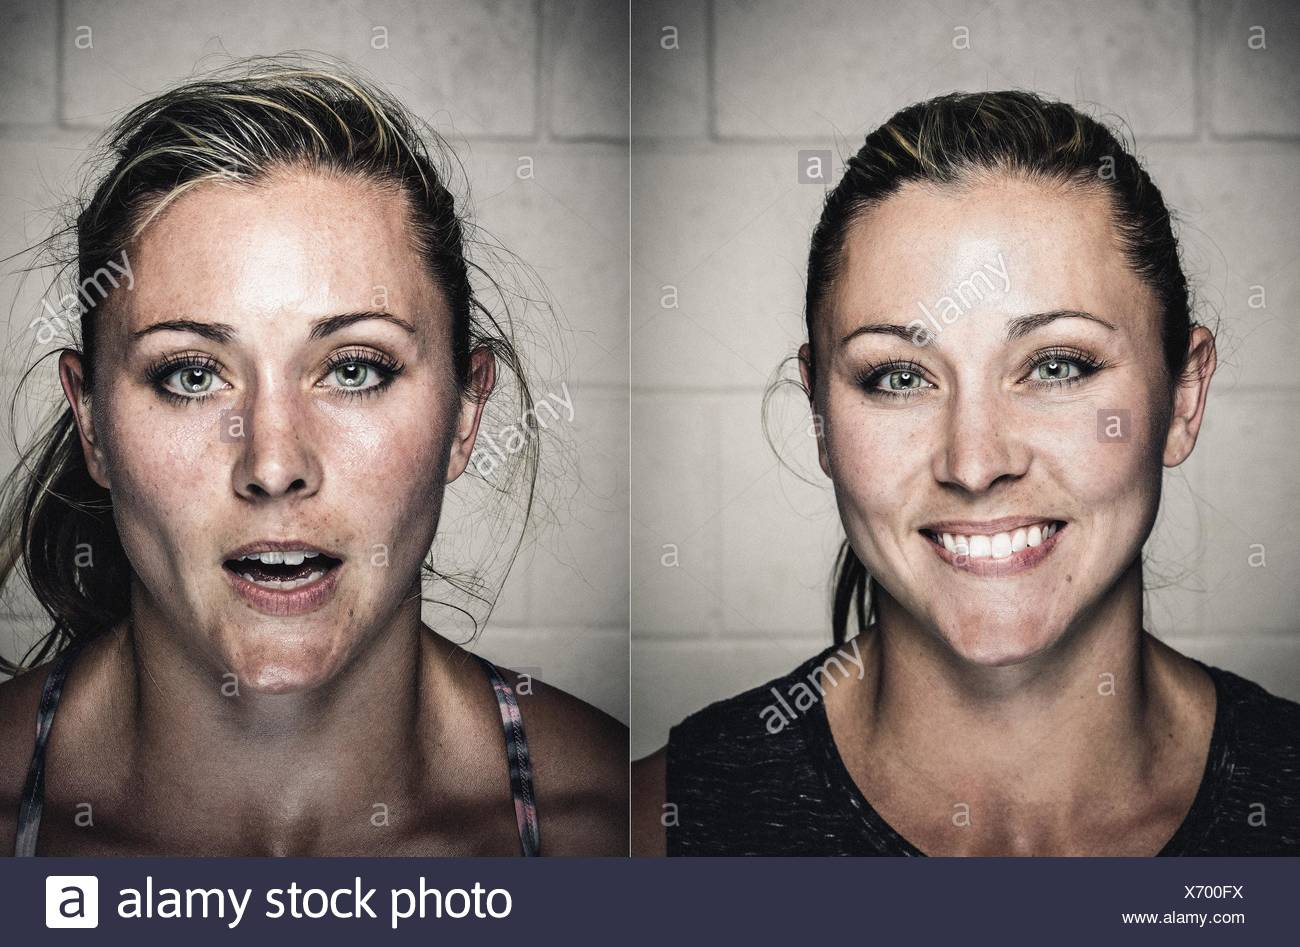 Portraits of young woman before and after workout - Stock Image